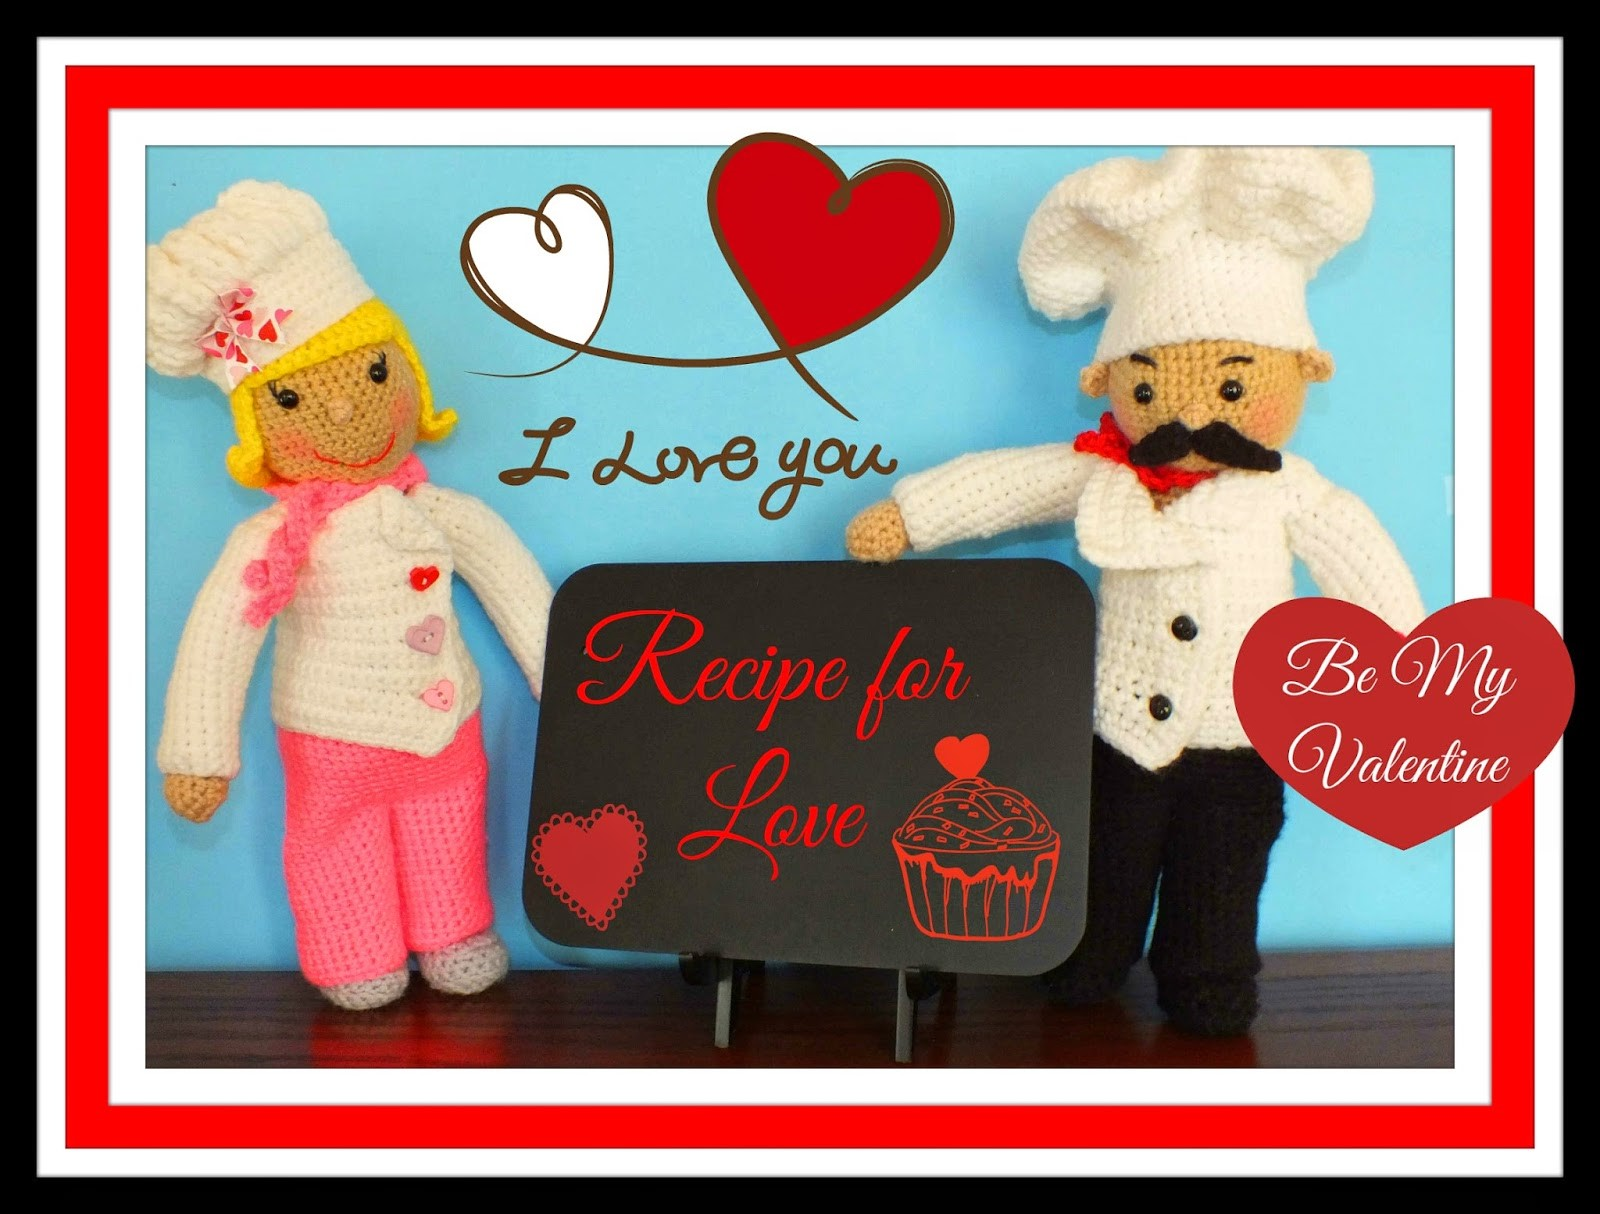 Chef Basil & Rosemary Dolls Pattern© By Connie Hughes Designs©